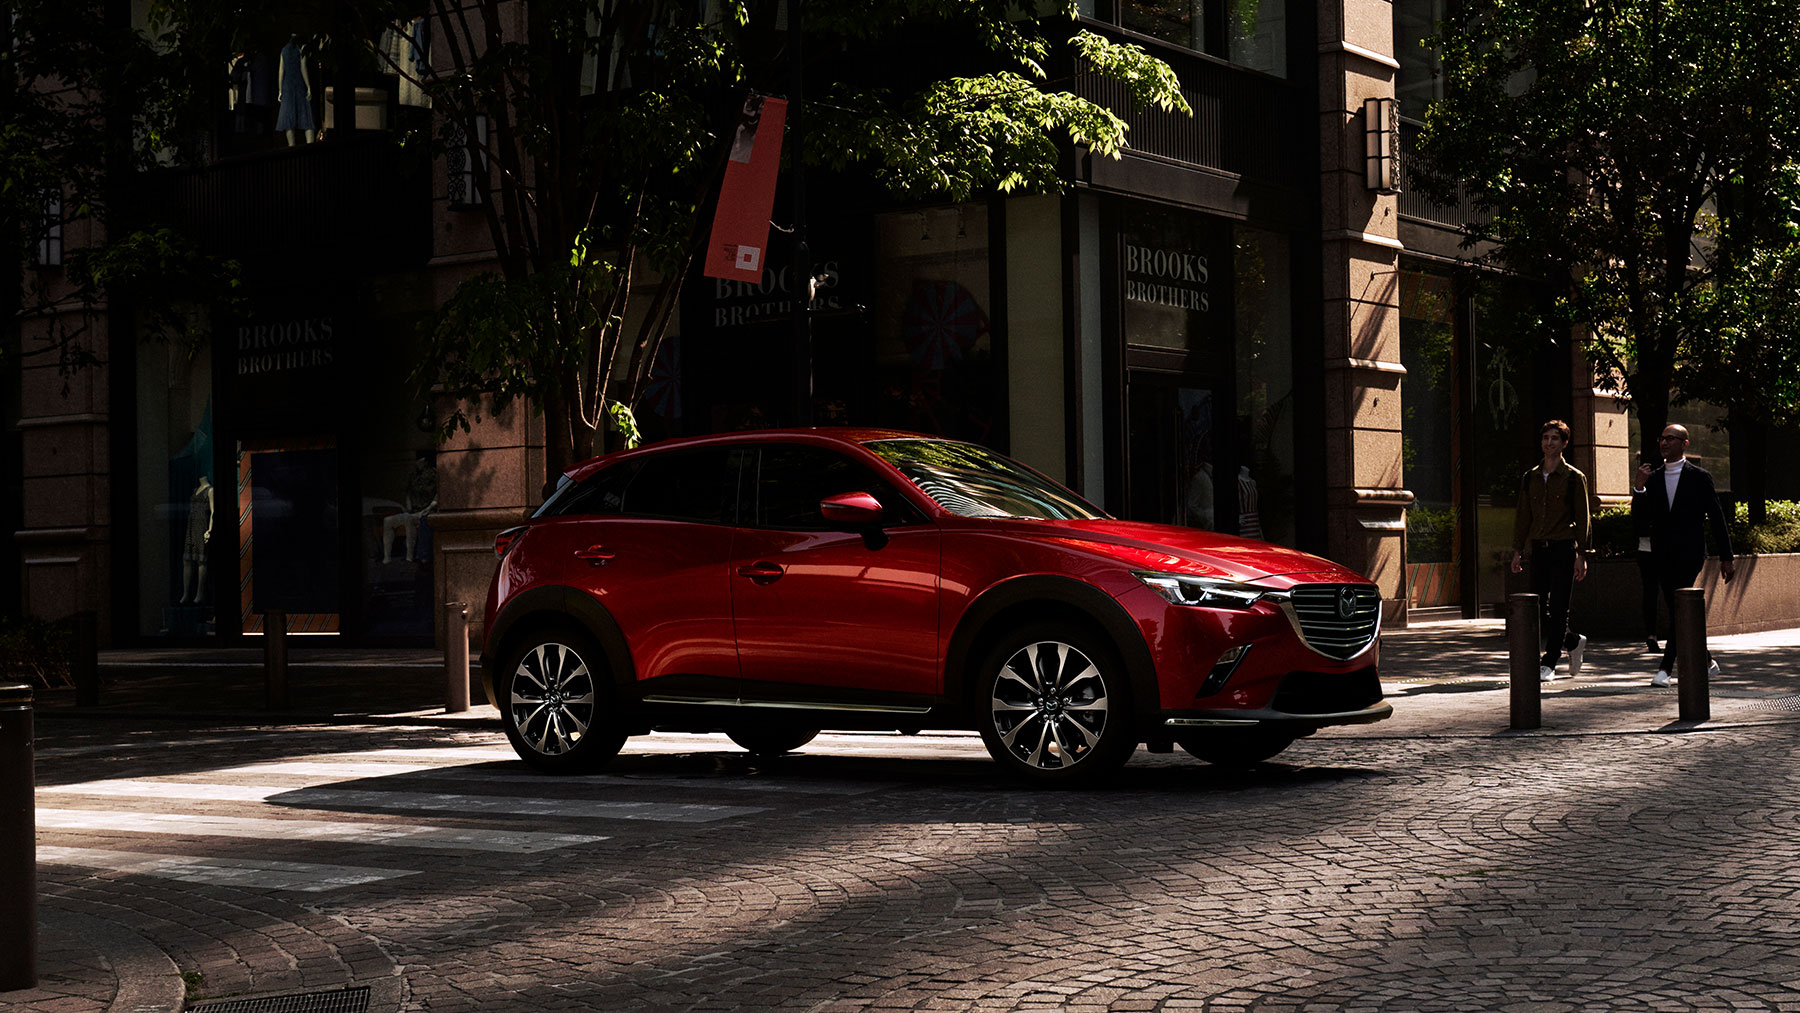 2019 Mazda CX-3 Leasing near Hempstead, NY